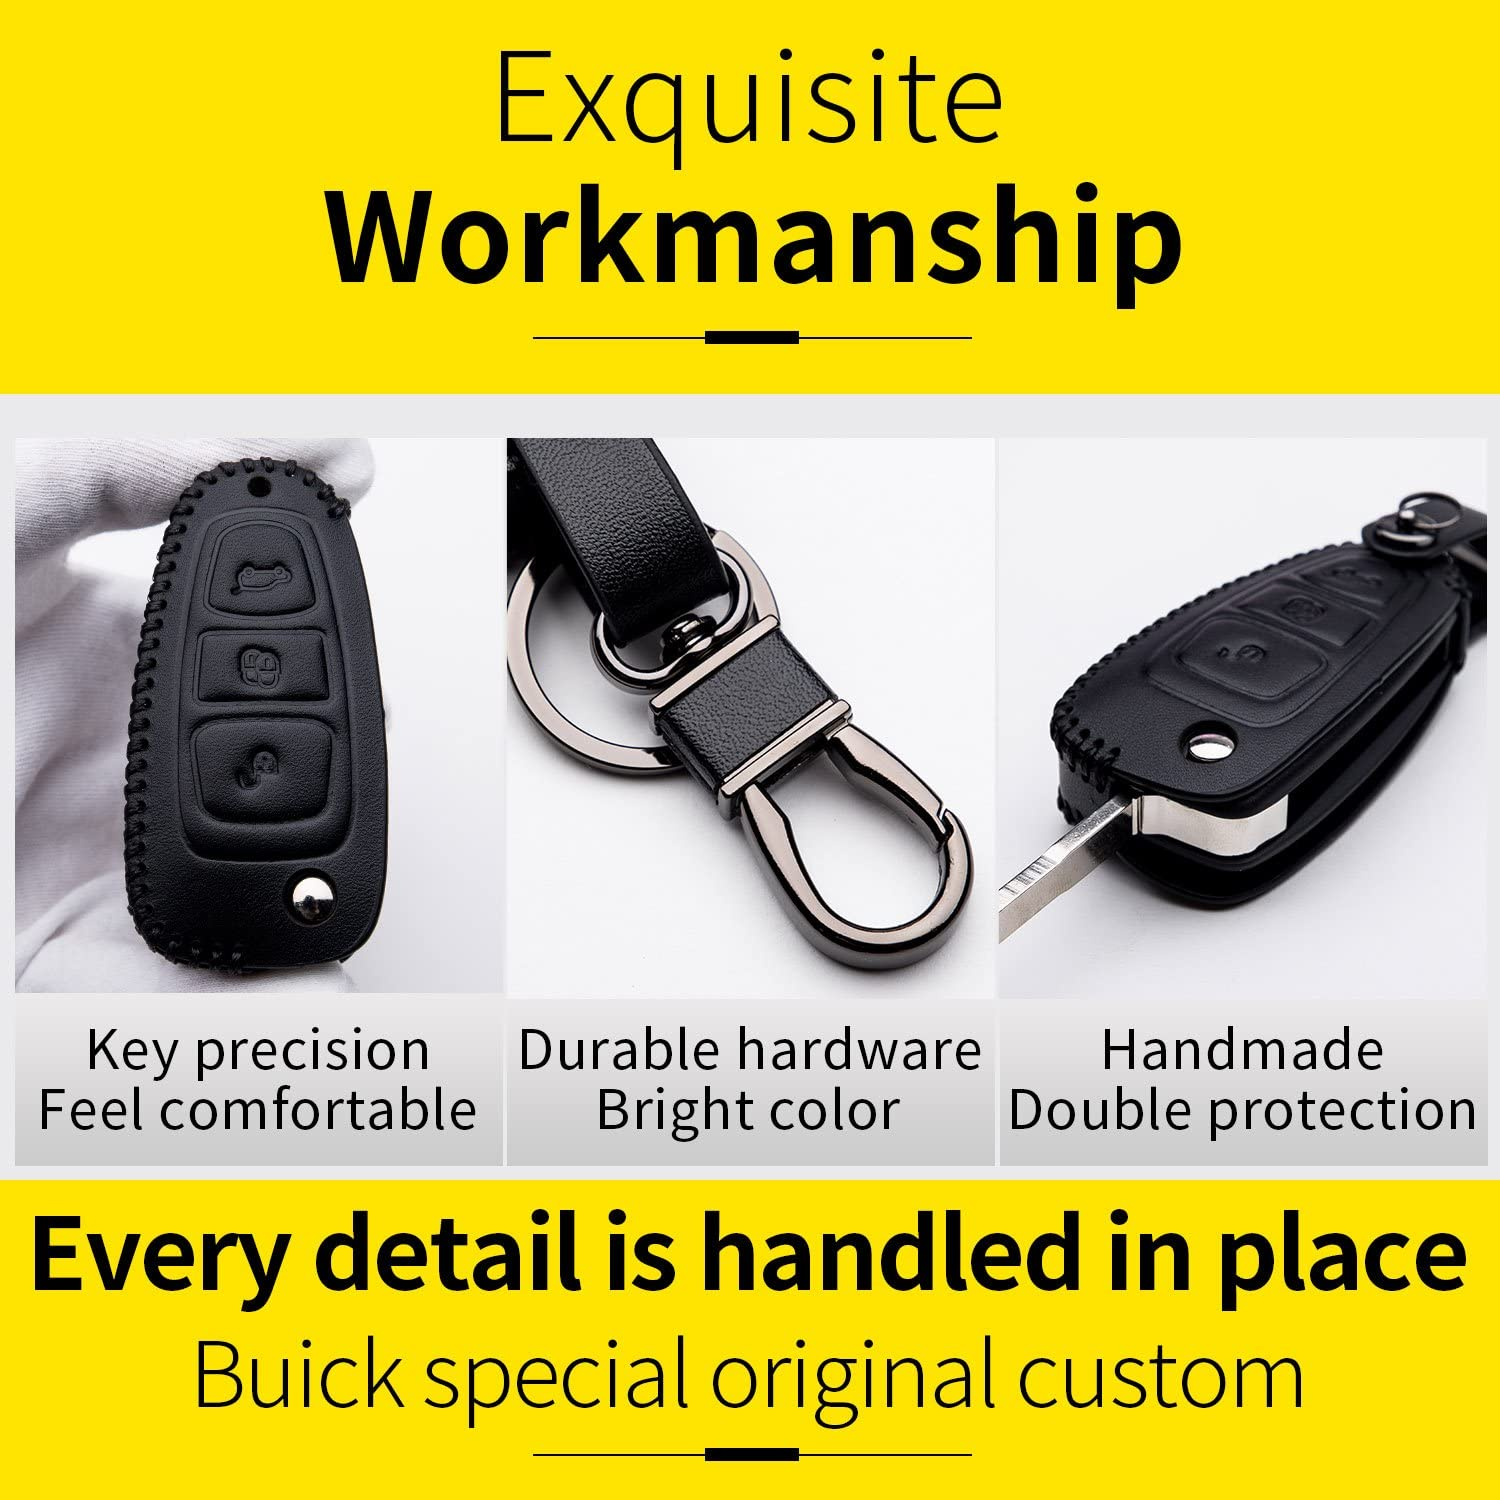 Cover Shell Fob Leather Case with Keyring for Key Ford Fiesta Focus Galaxy Fusion S-Max Kuga Ecosport Chiave Key 3 Buttons Protection Remote Control Car